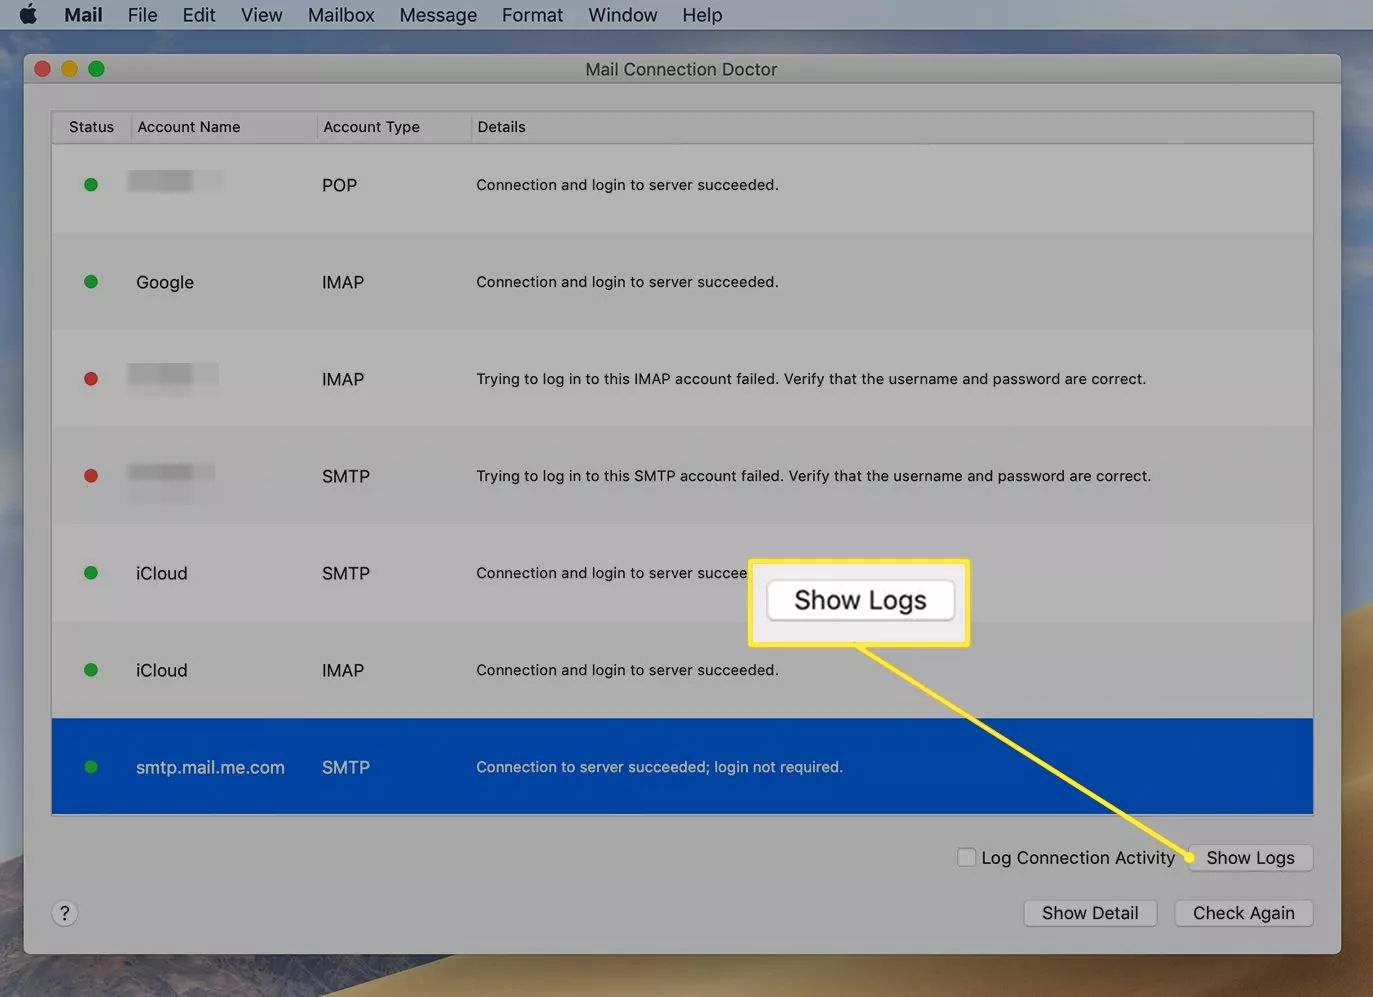 The Apple Mail app's Mail Connection Doctor window with the 'Show Logs' button highlighted